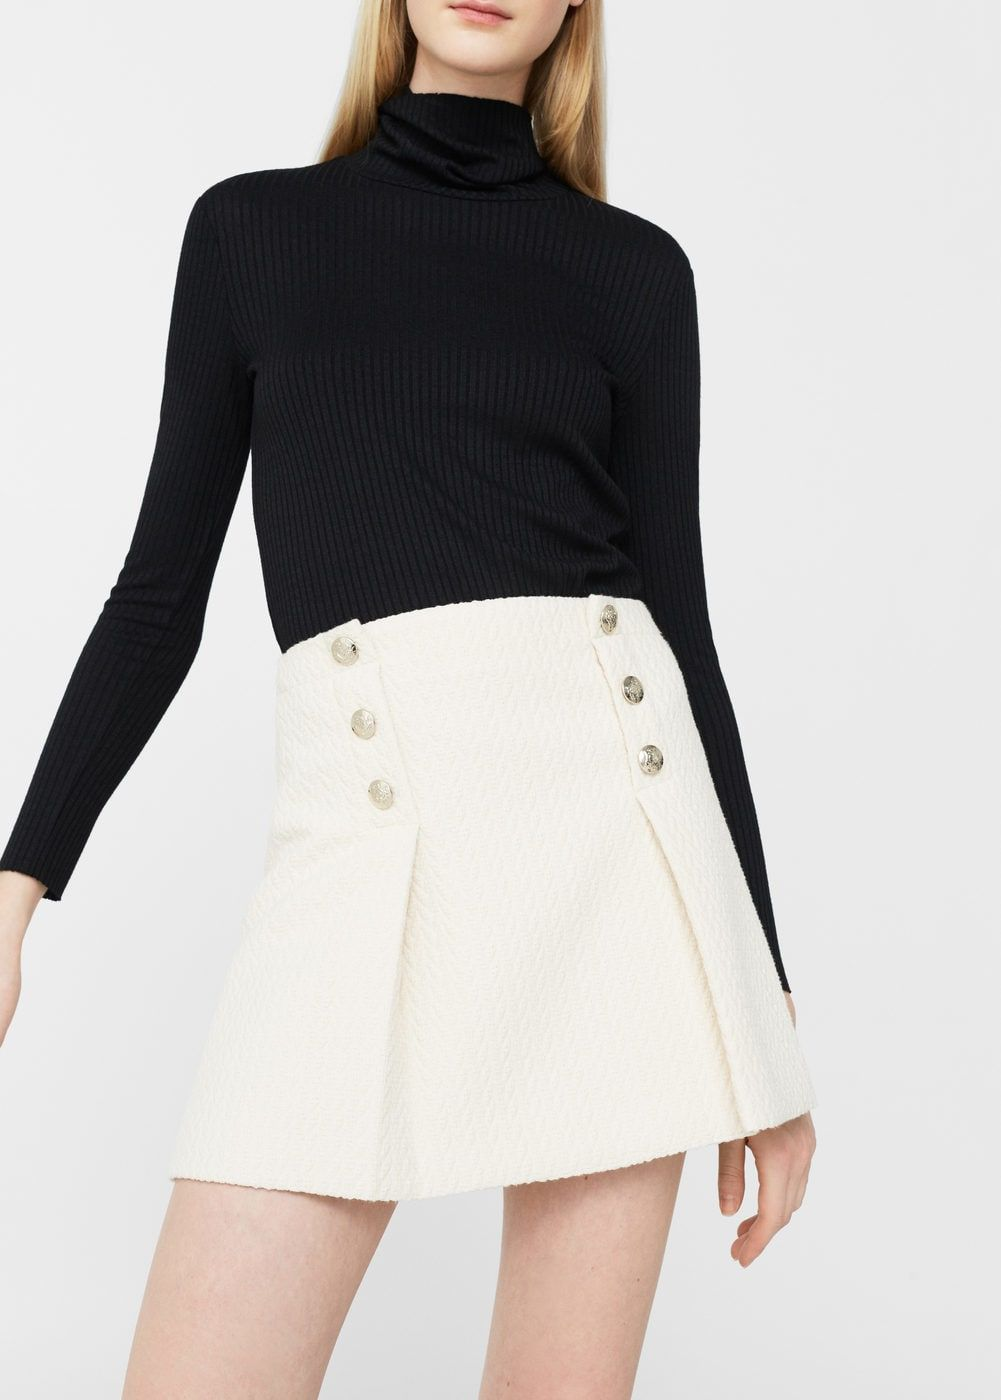 ae858d8e9e3 Double-breasted skirt - Women in 2019